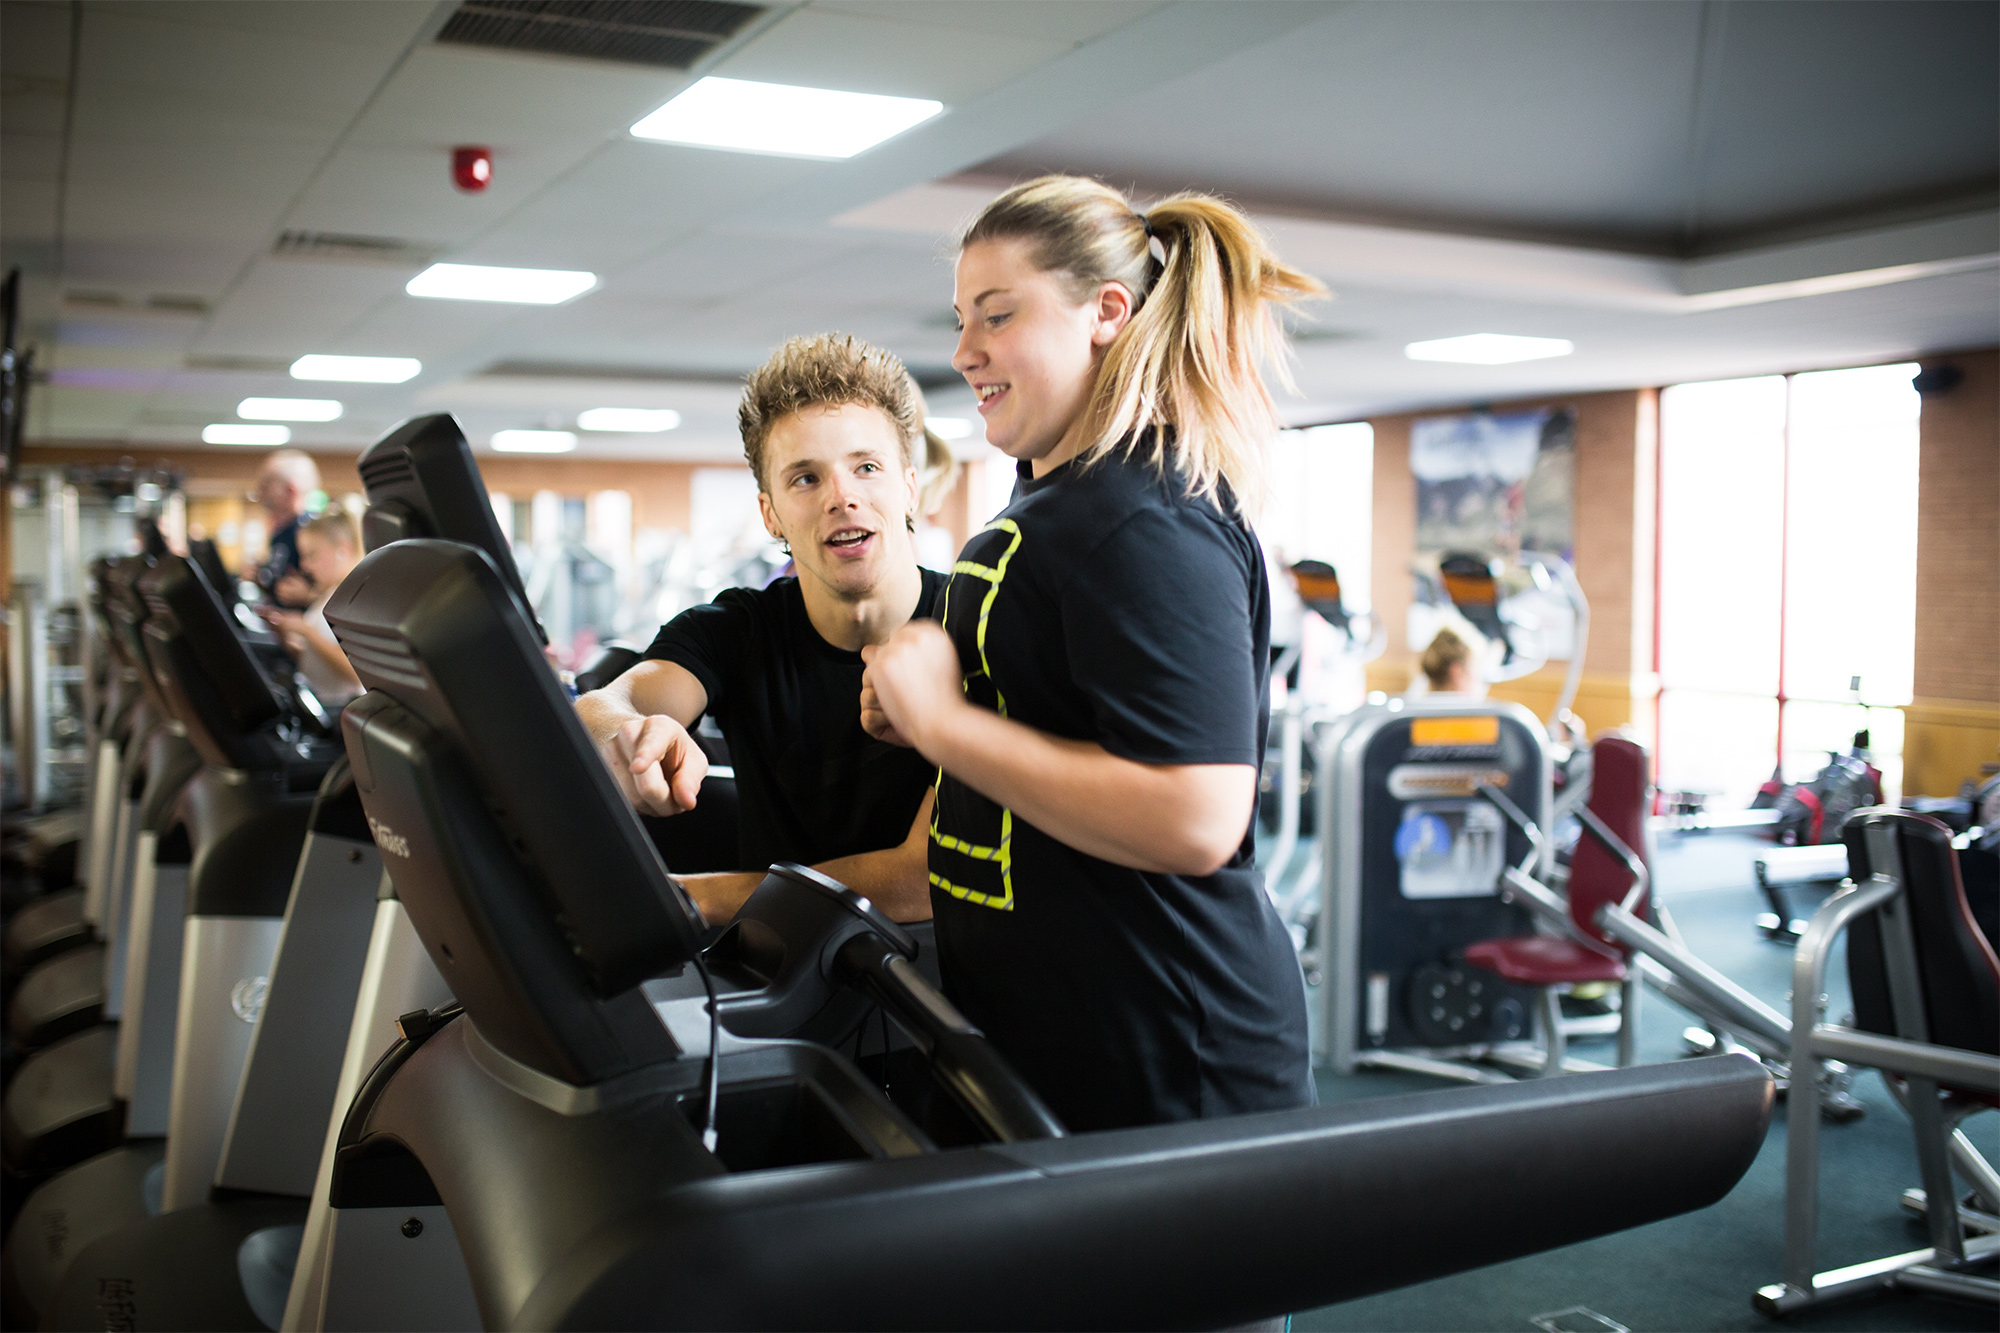 Serco Leisure to launch bespoke digital workshop programme in partnership with Life Fitness Academy